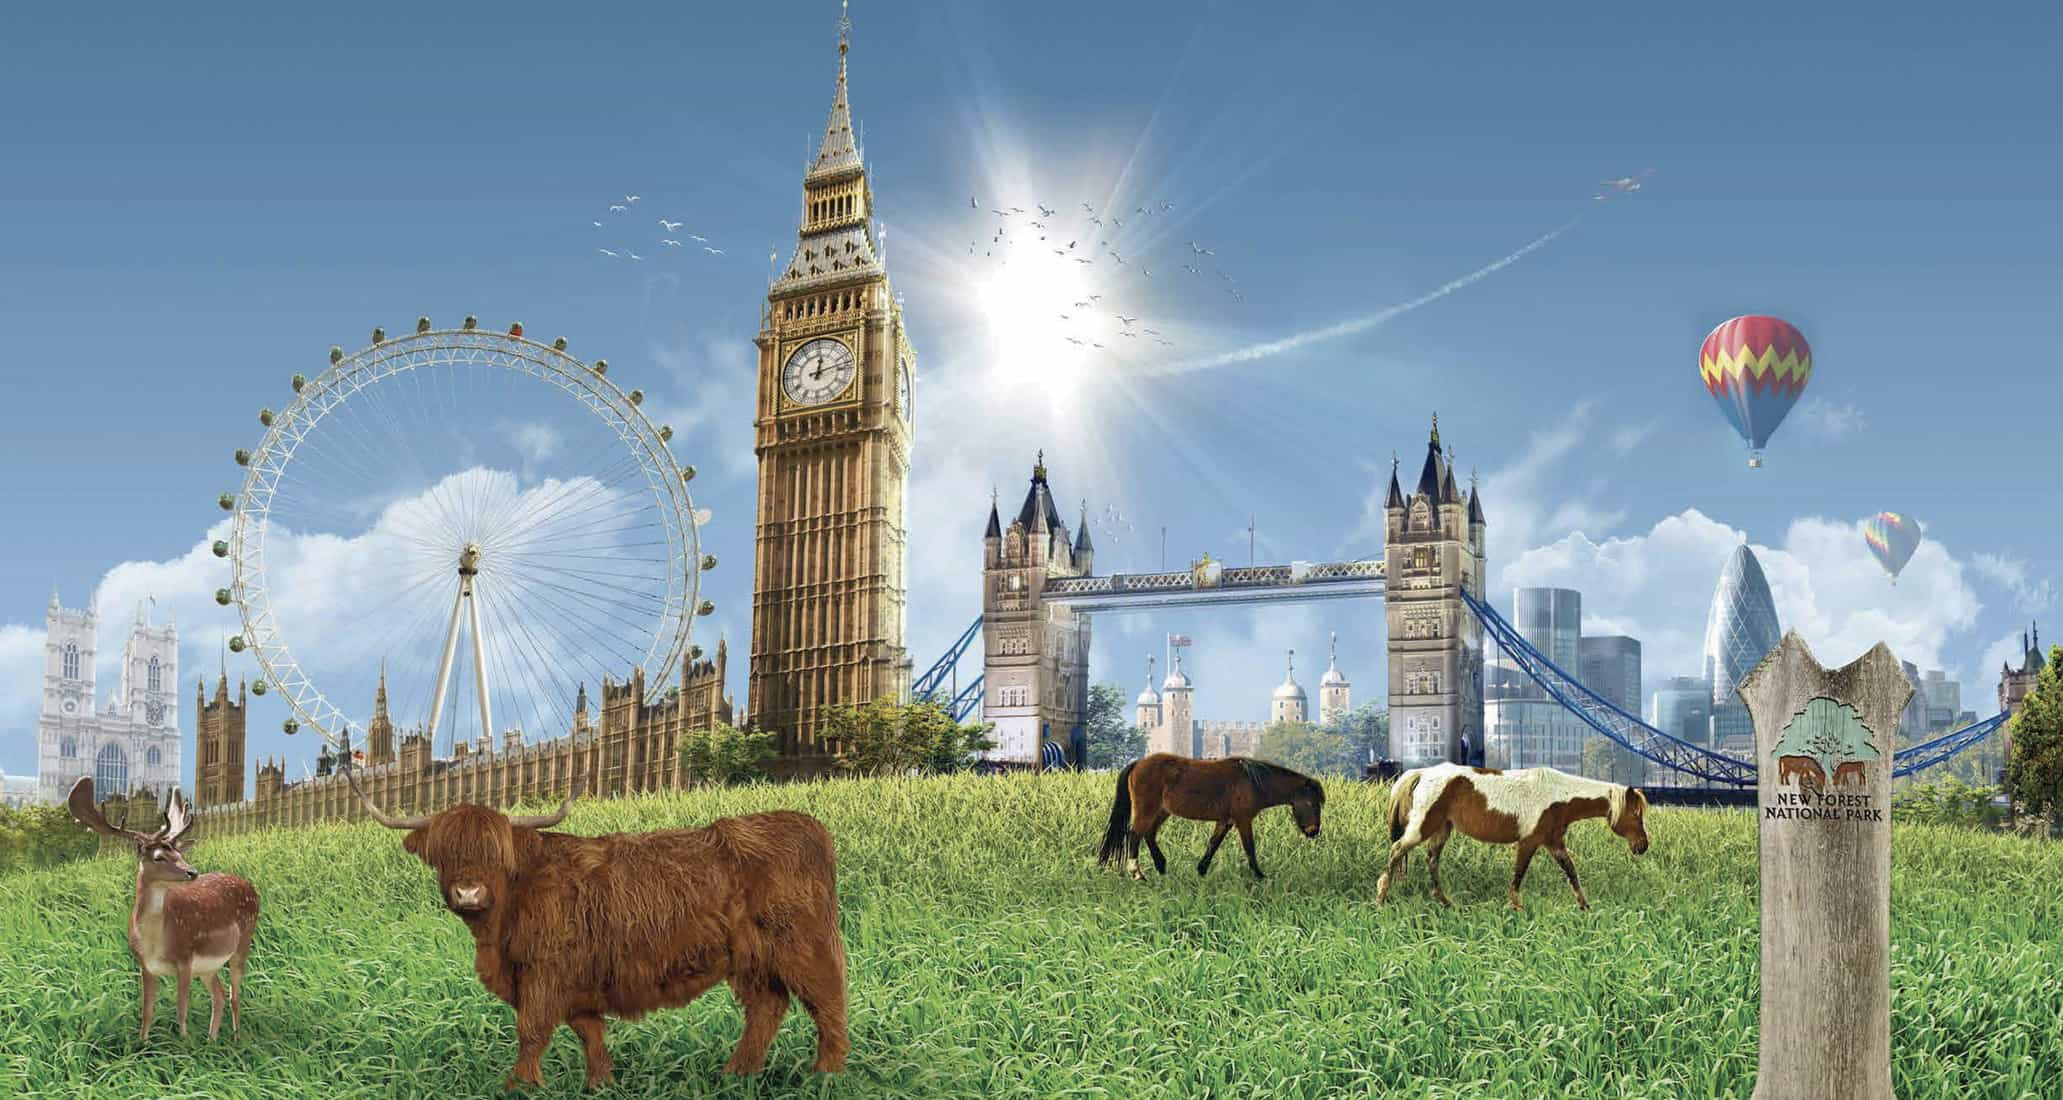 Can we put your home in the London eye?